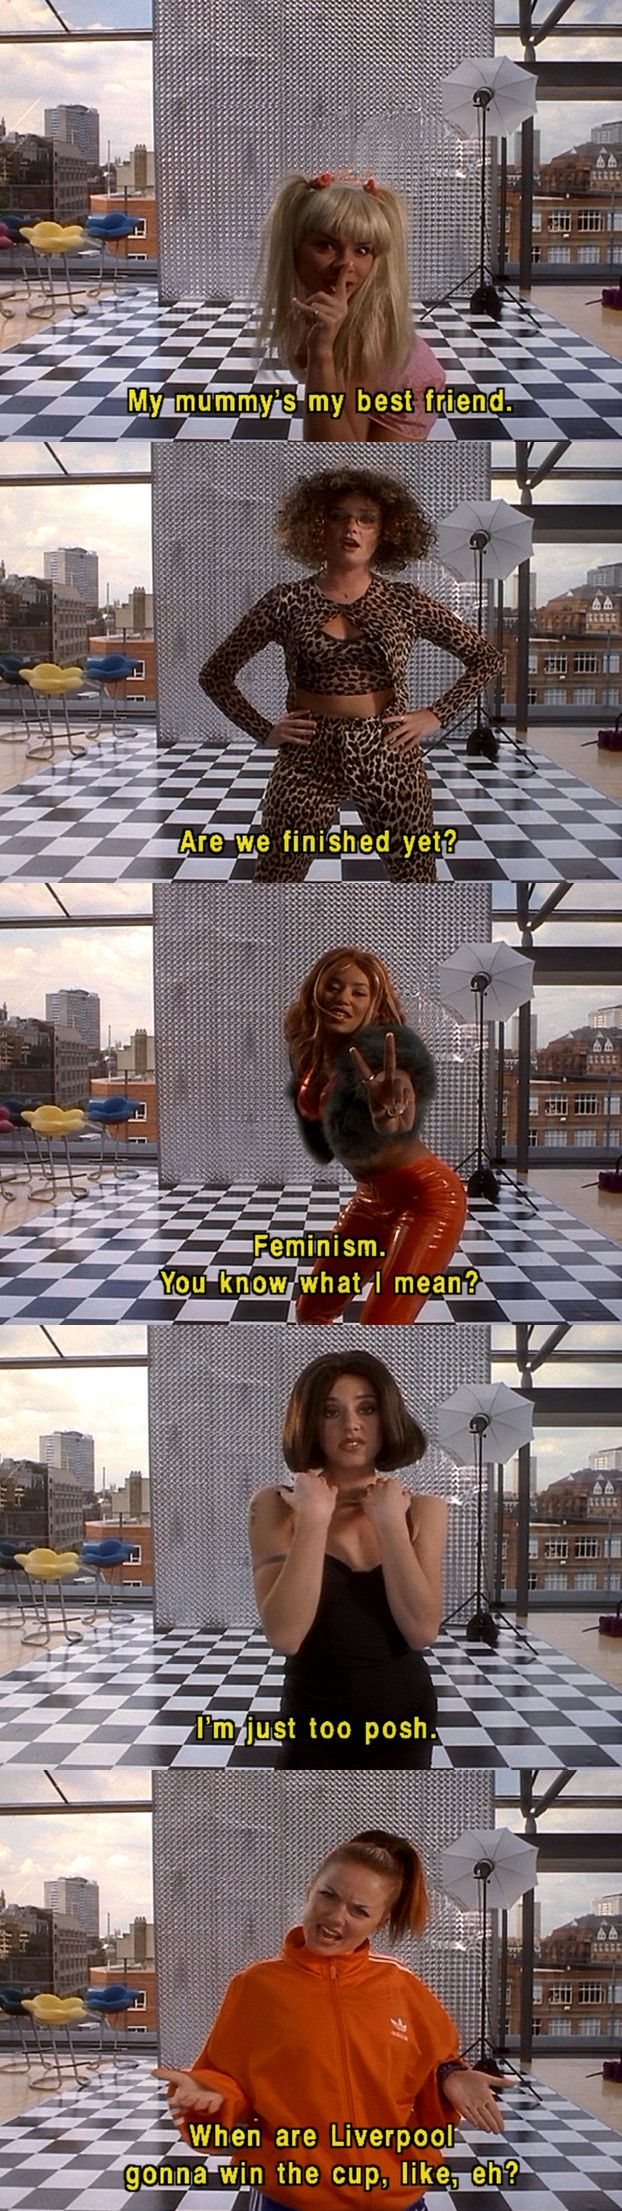 Spice Girls, Spice World, film, music, 1990s, 90s, 1997, parody, comedy